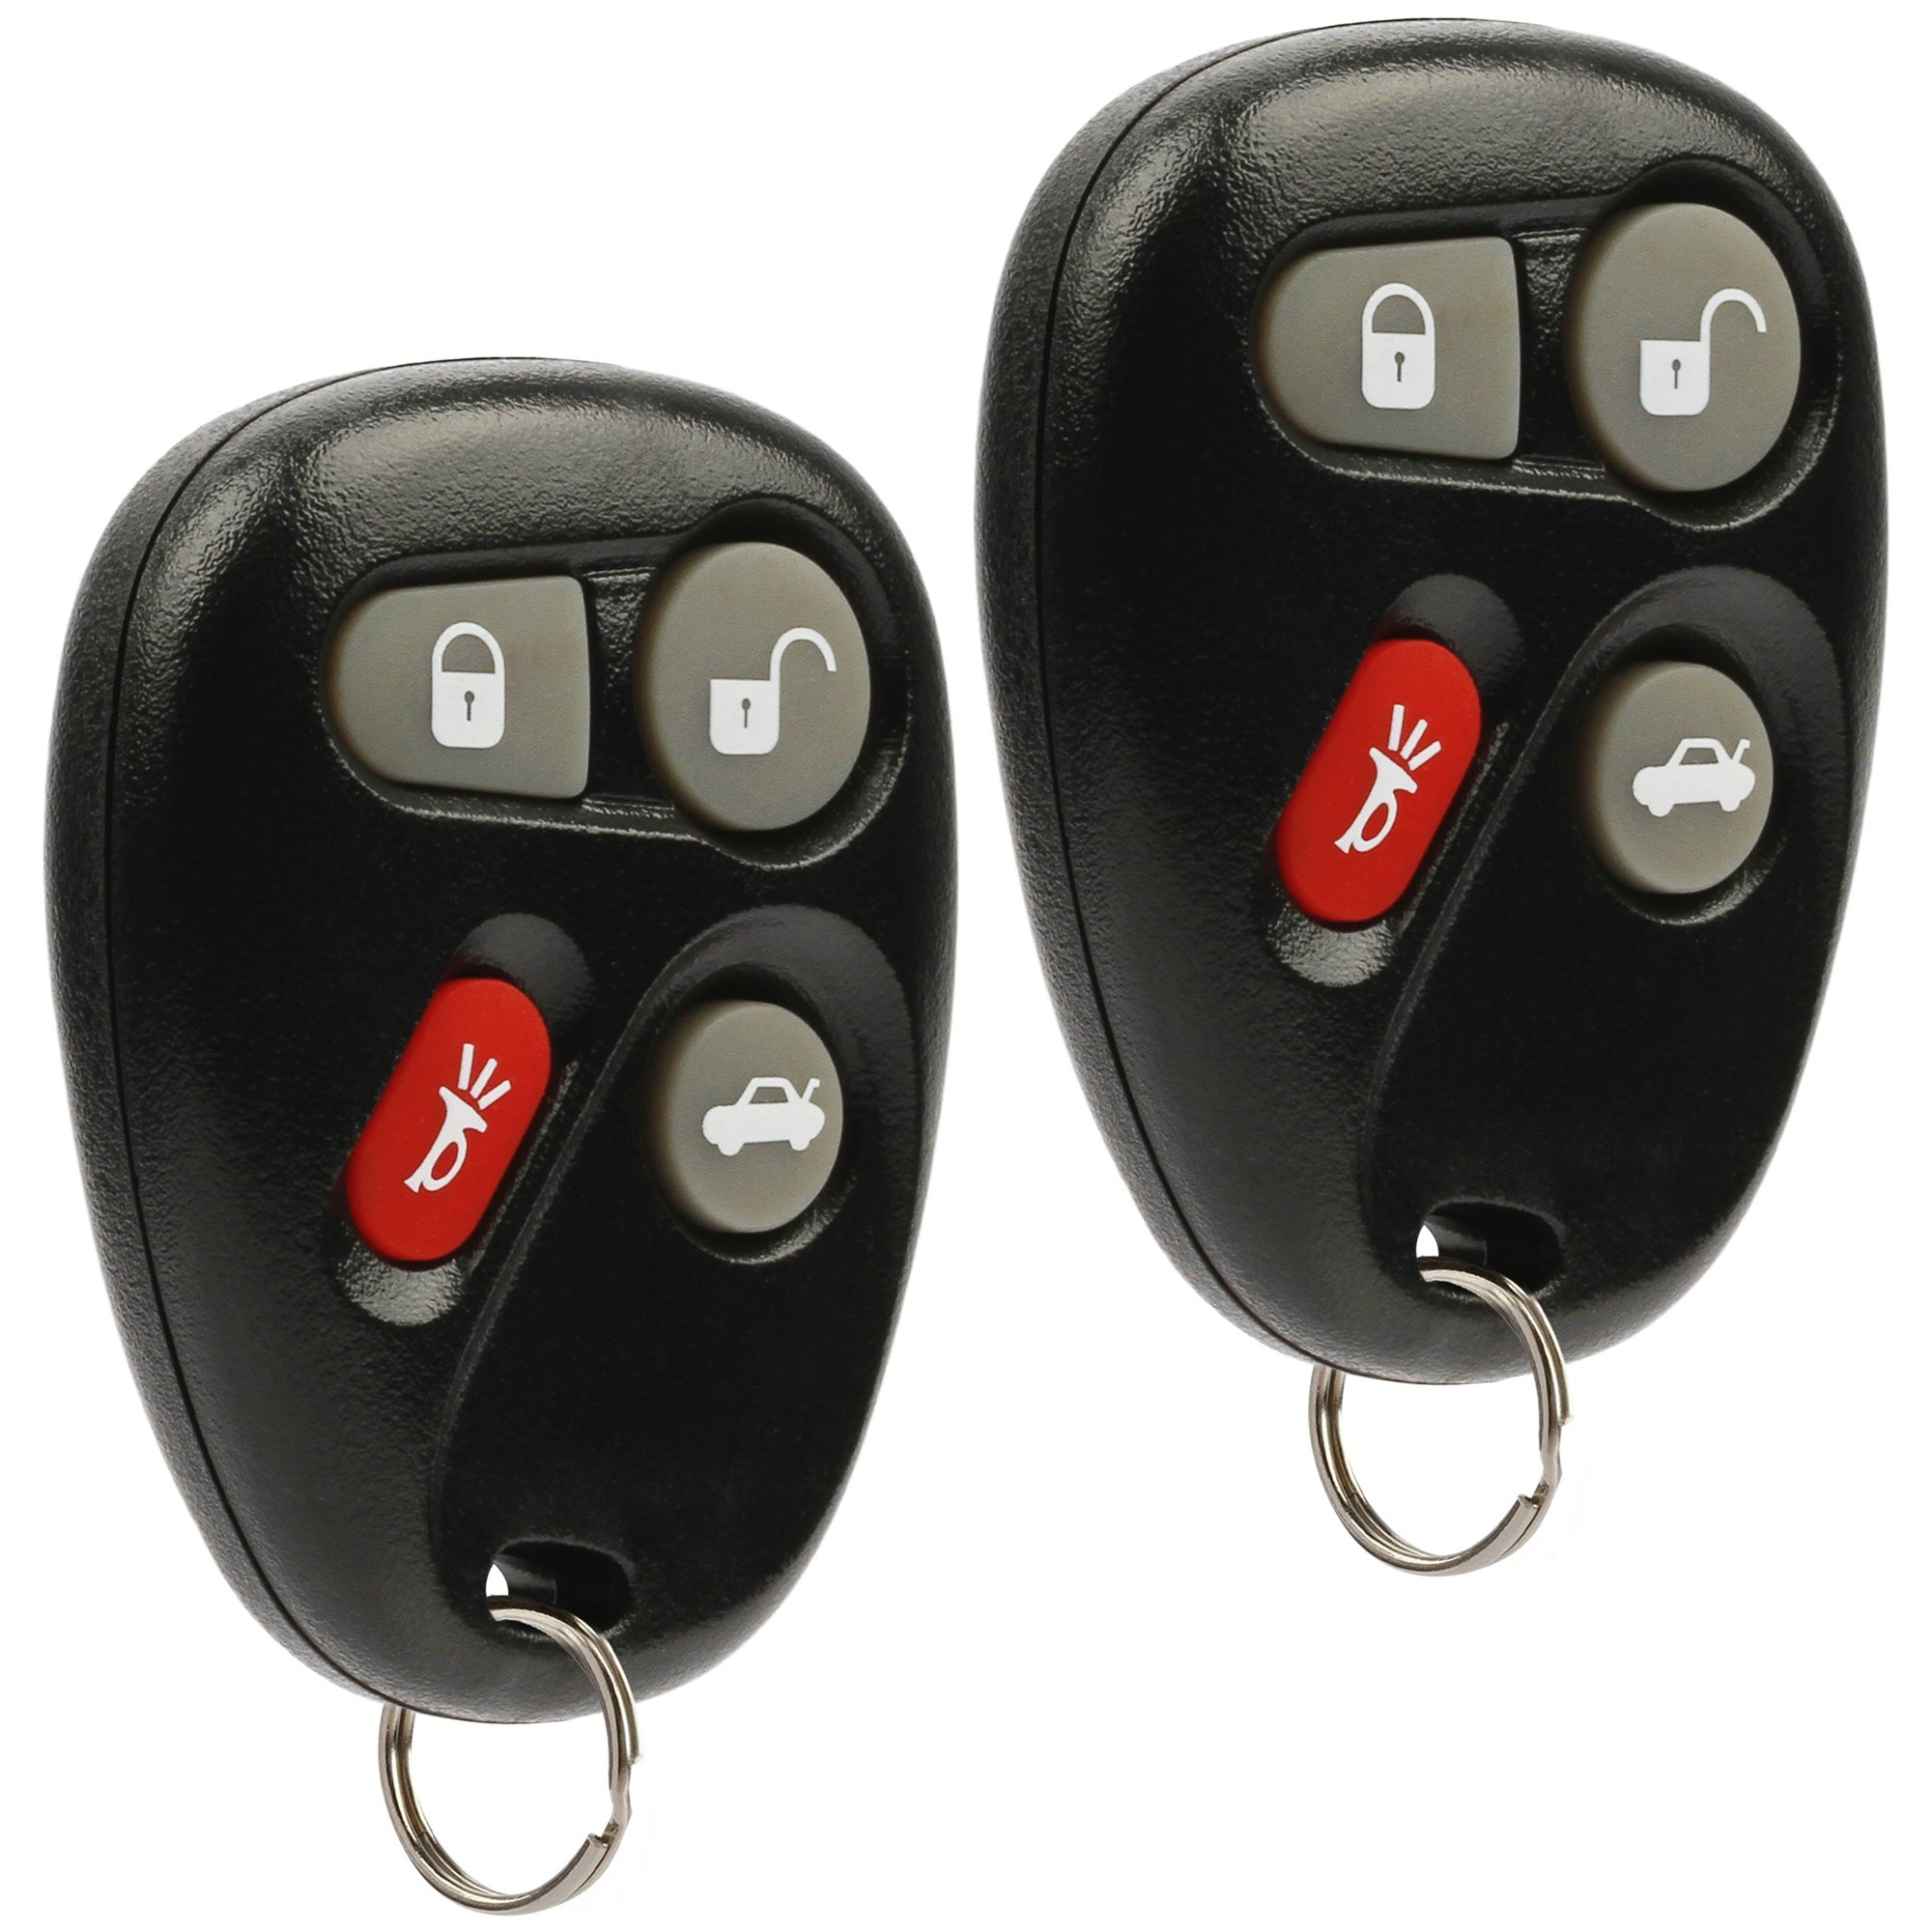 Car Key Fob Keyless Entry Remote fits Chevy Corvette Malibu SSR/Pontiac Bonneville Grand Am/Buick Lesabre/Cadillac Deville Seville/Oldsmobile Alero Aurora (KOBLEAR1XT, 25695954), Set of 2 by USARemote